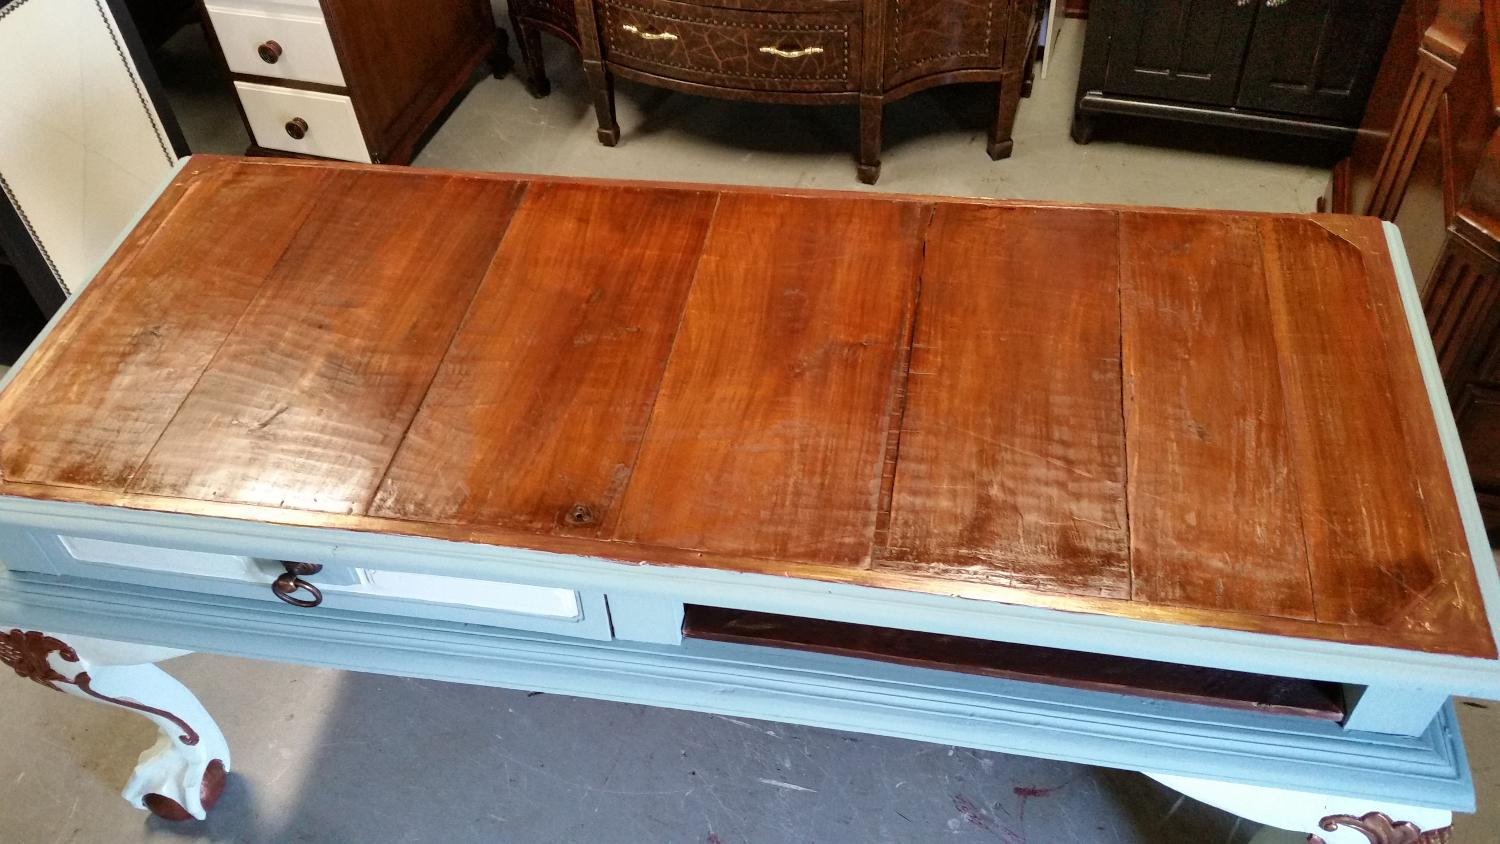 Best antique table for sale in greensboro north carolina for Table 6 greensboro nc